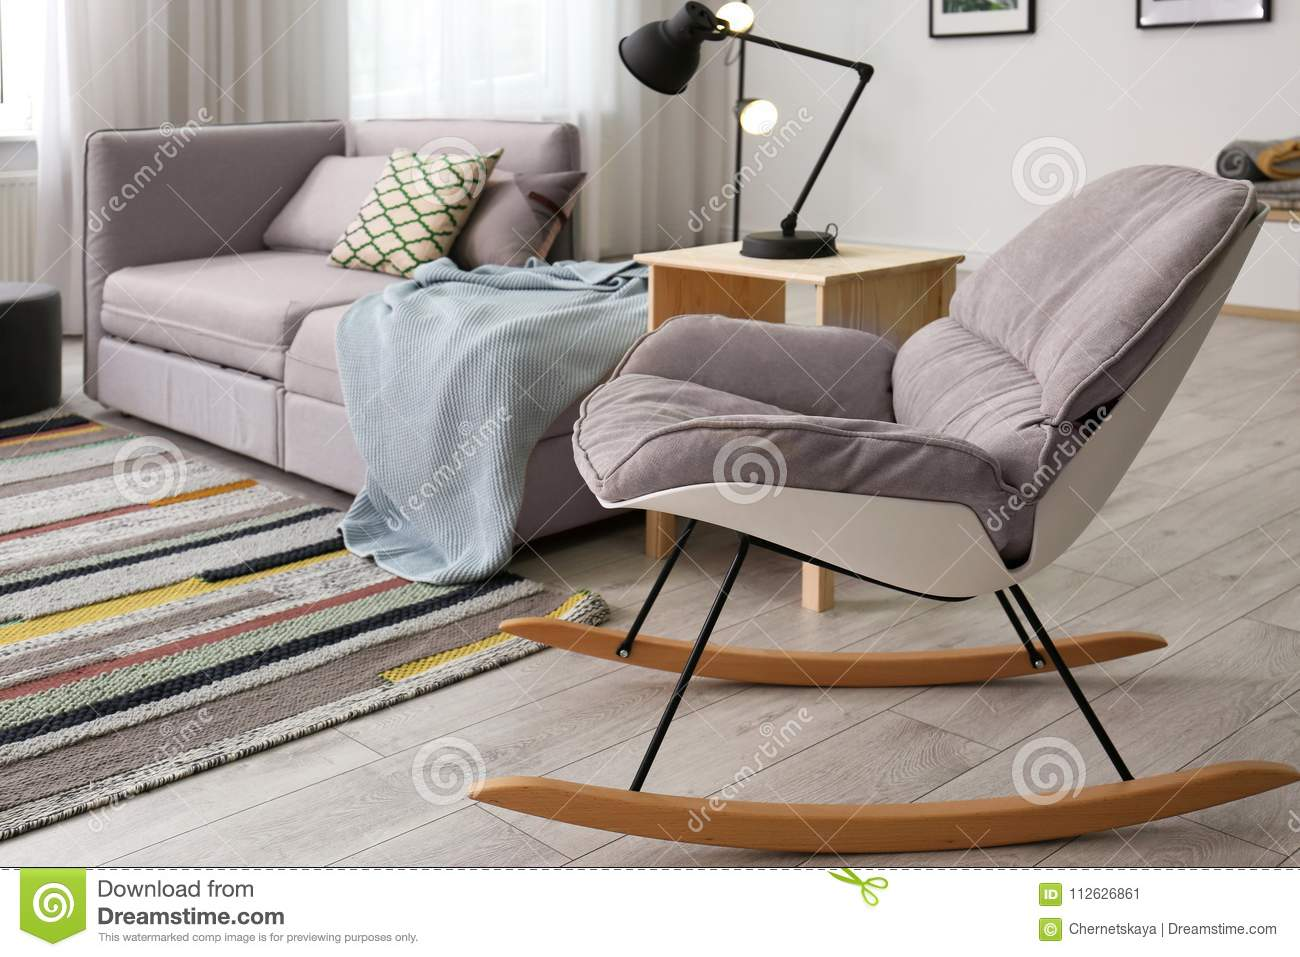 sofa rocking chair smart bed uk stylish living room interior with stock image and comfortable